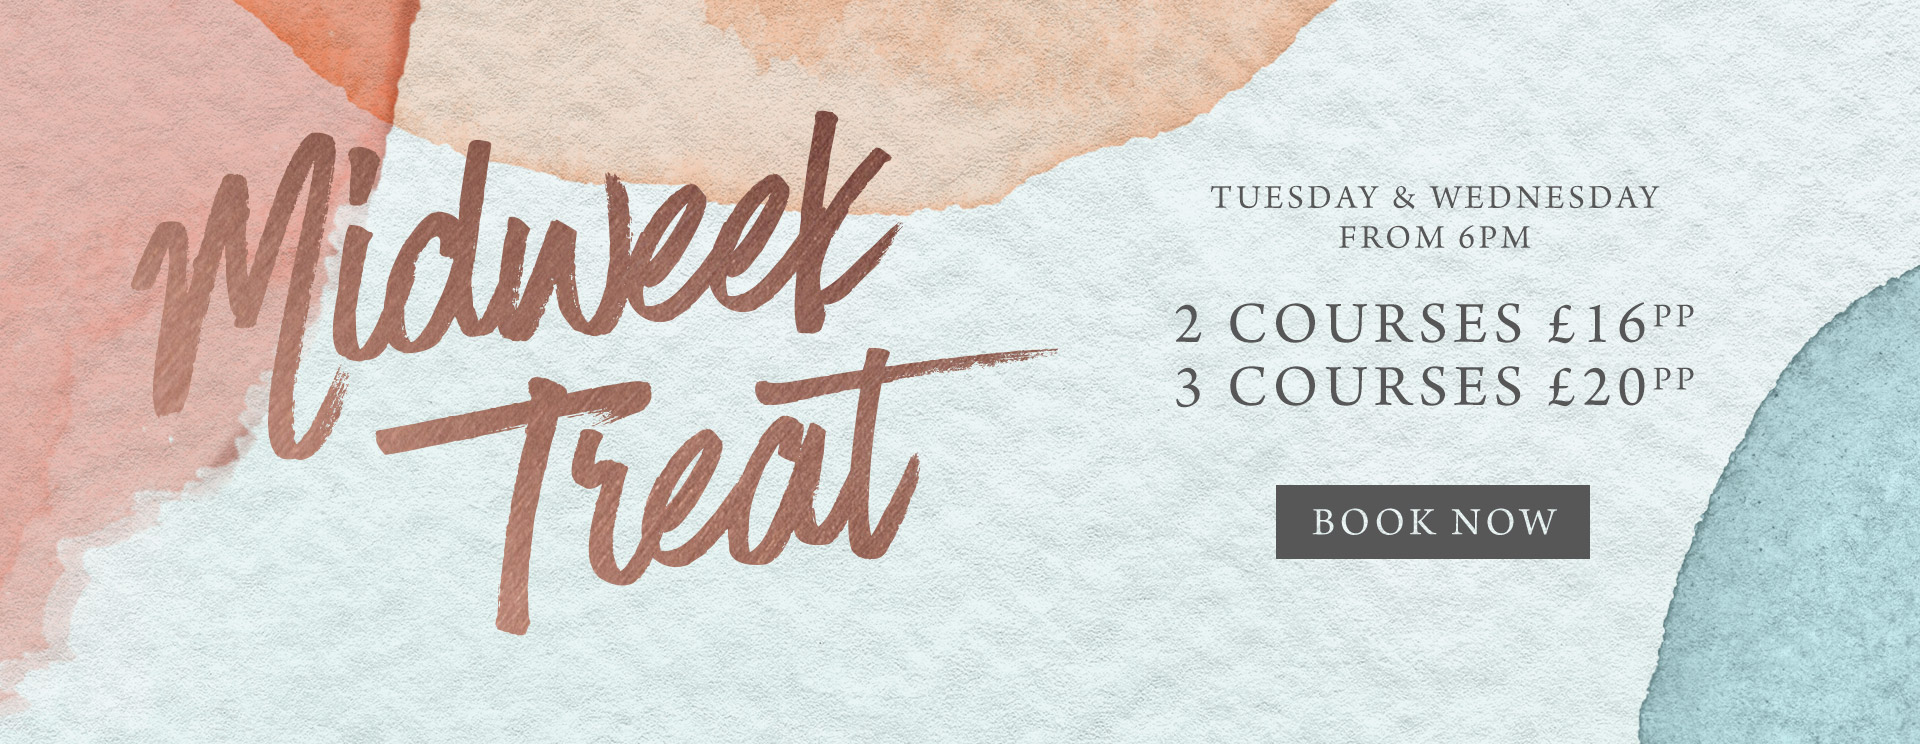 Midweek treat at The George & Dragon - Book now